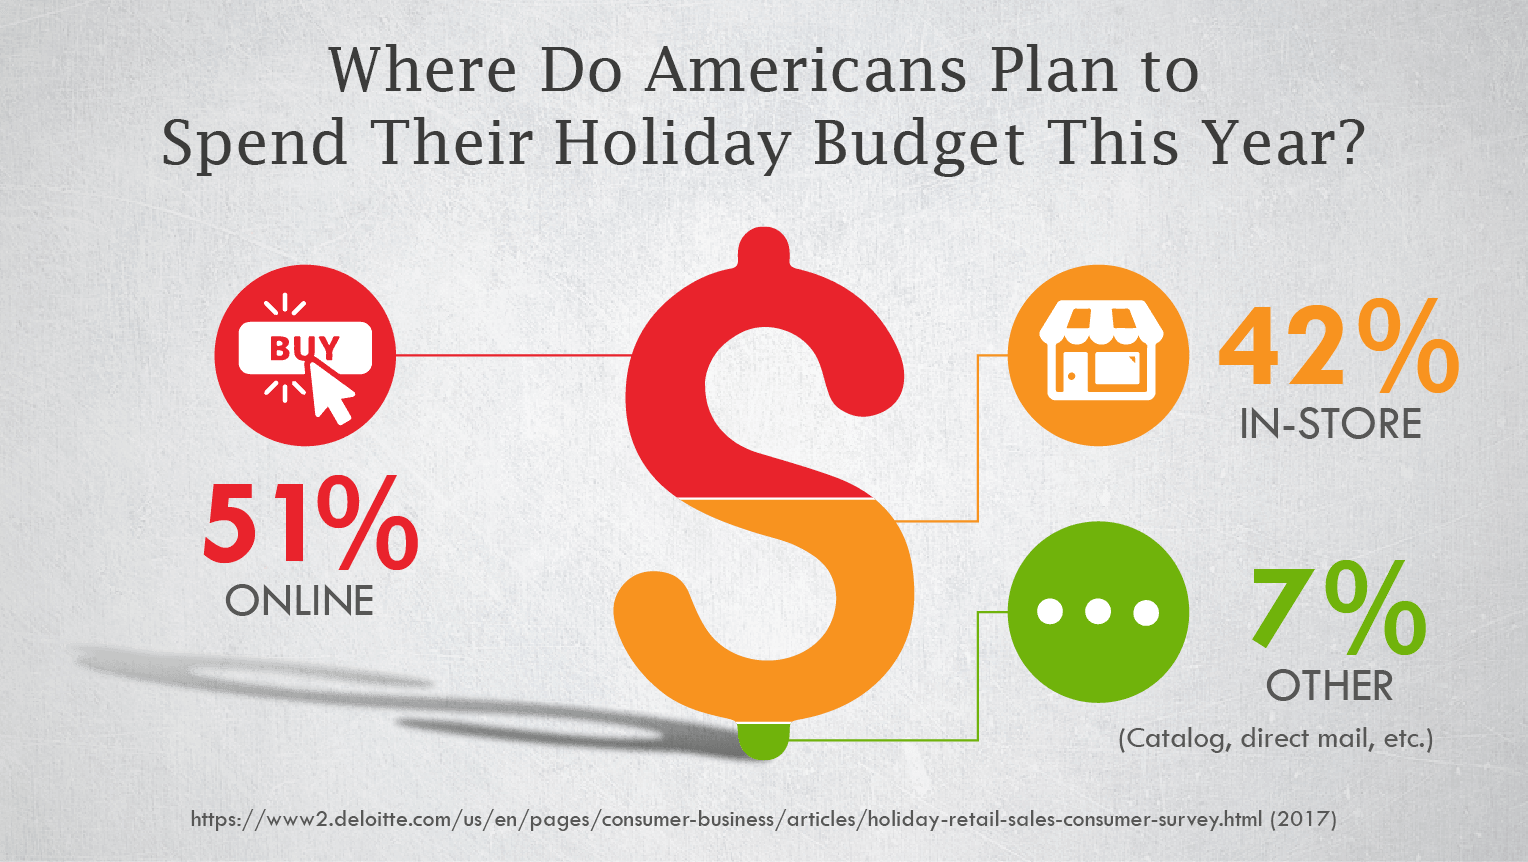 Where Do Americans Plan to Spend Their Holiday Budget This Year?